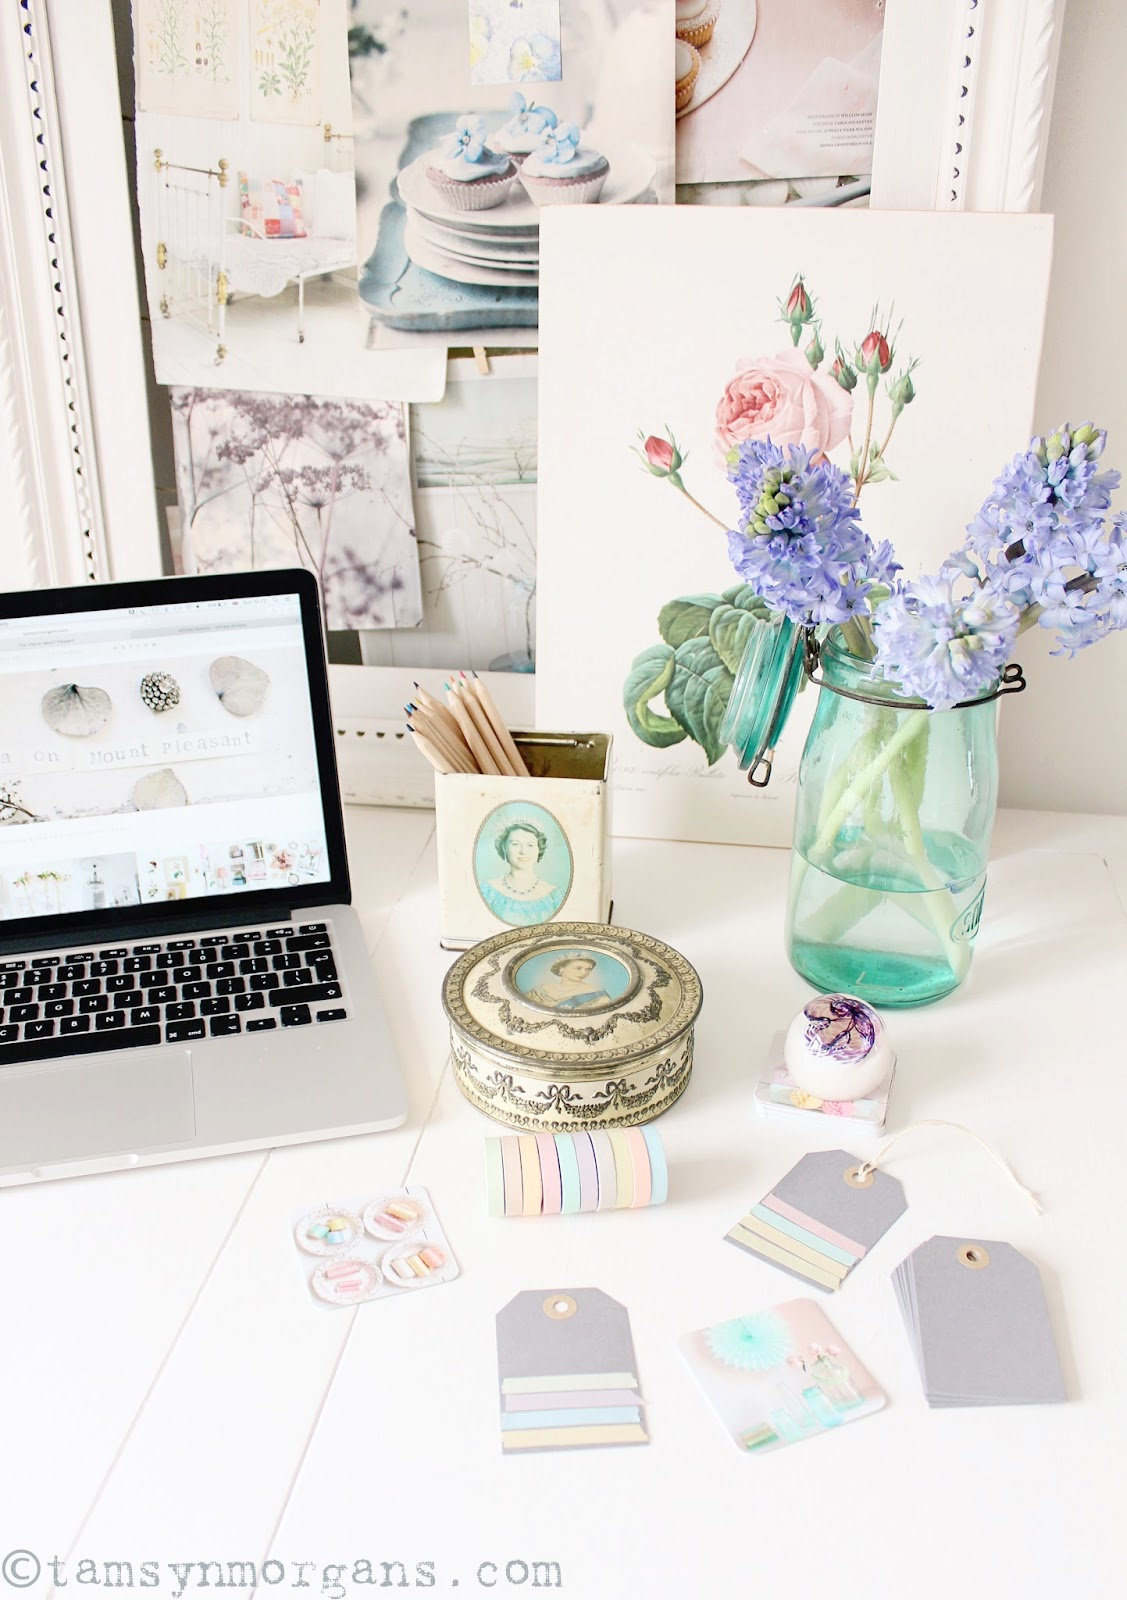 Prettifying My Desk With Etsy!